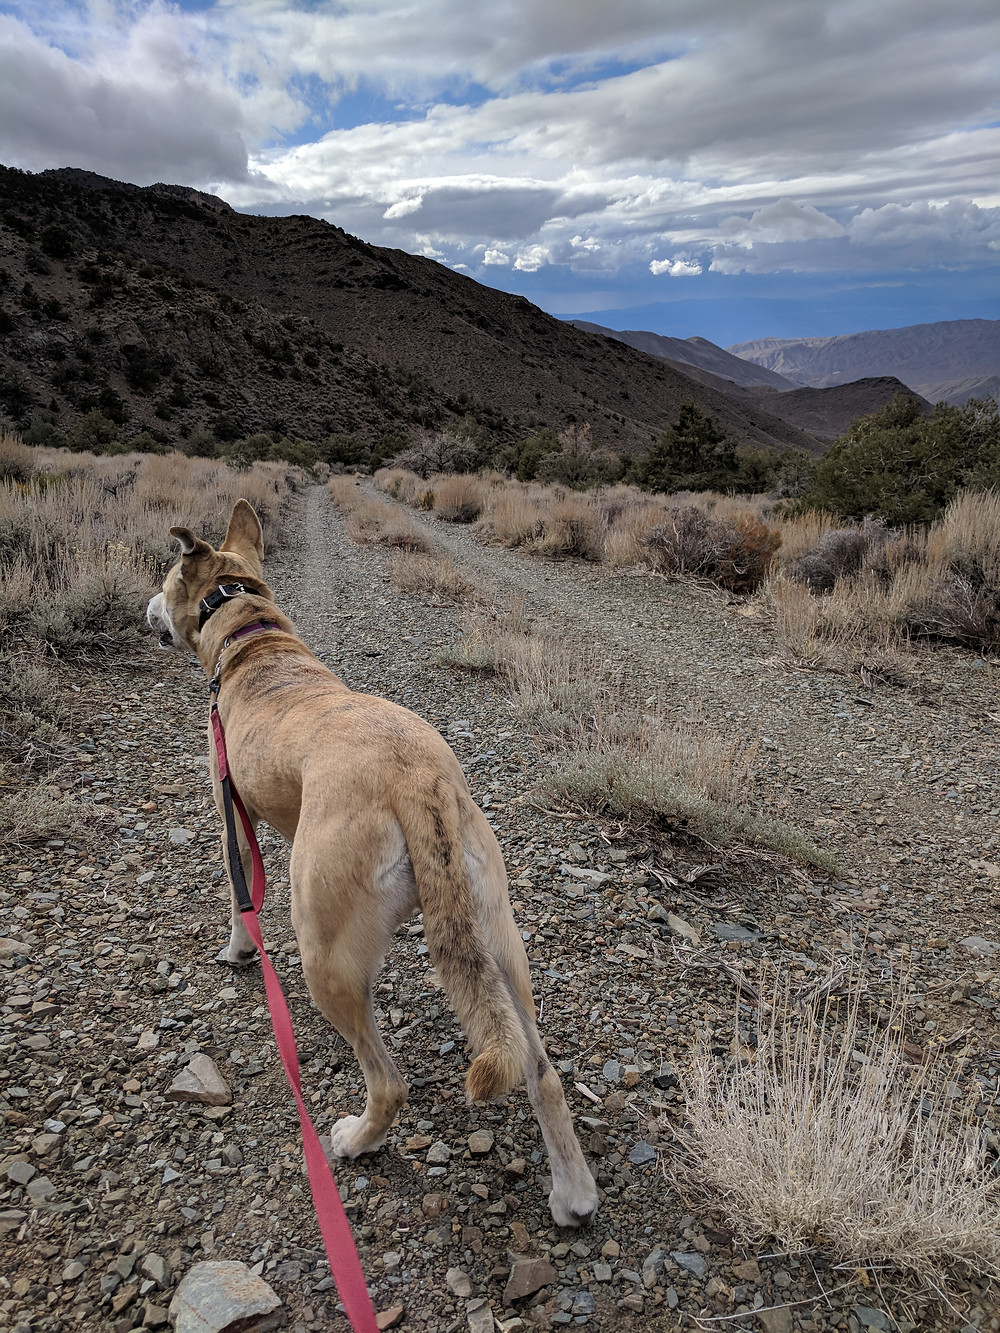 A blond dog stands on a wide rocky trail, a red leash leading to the camera. Photo by Tenley Lozano.